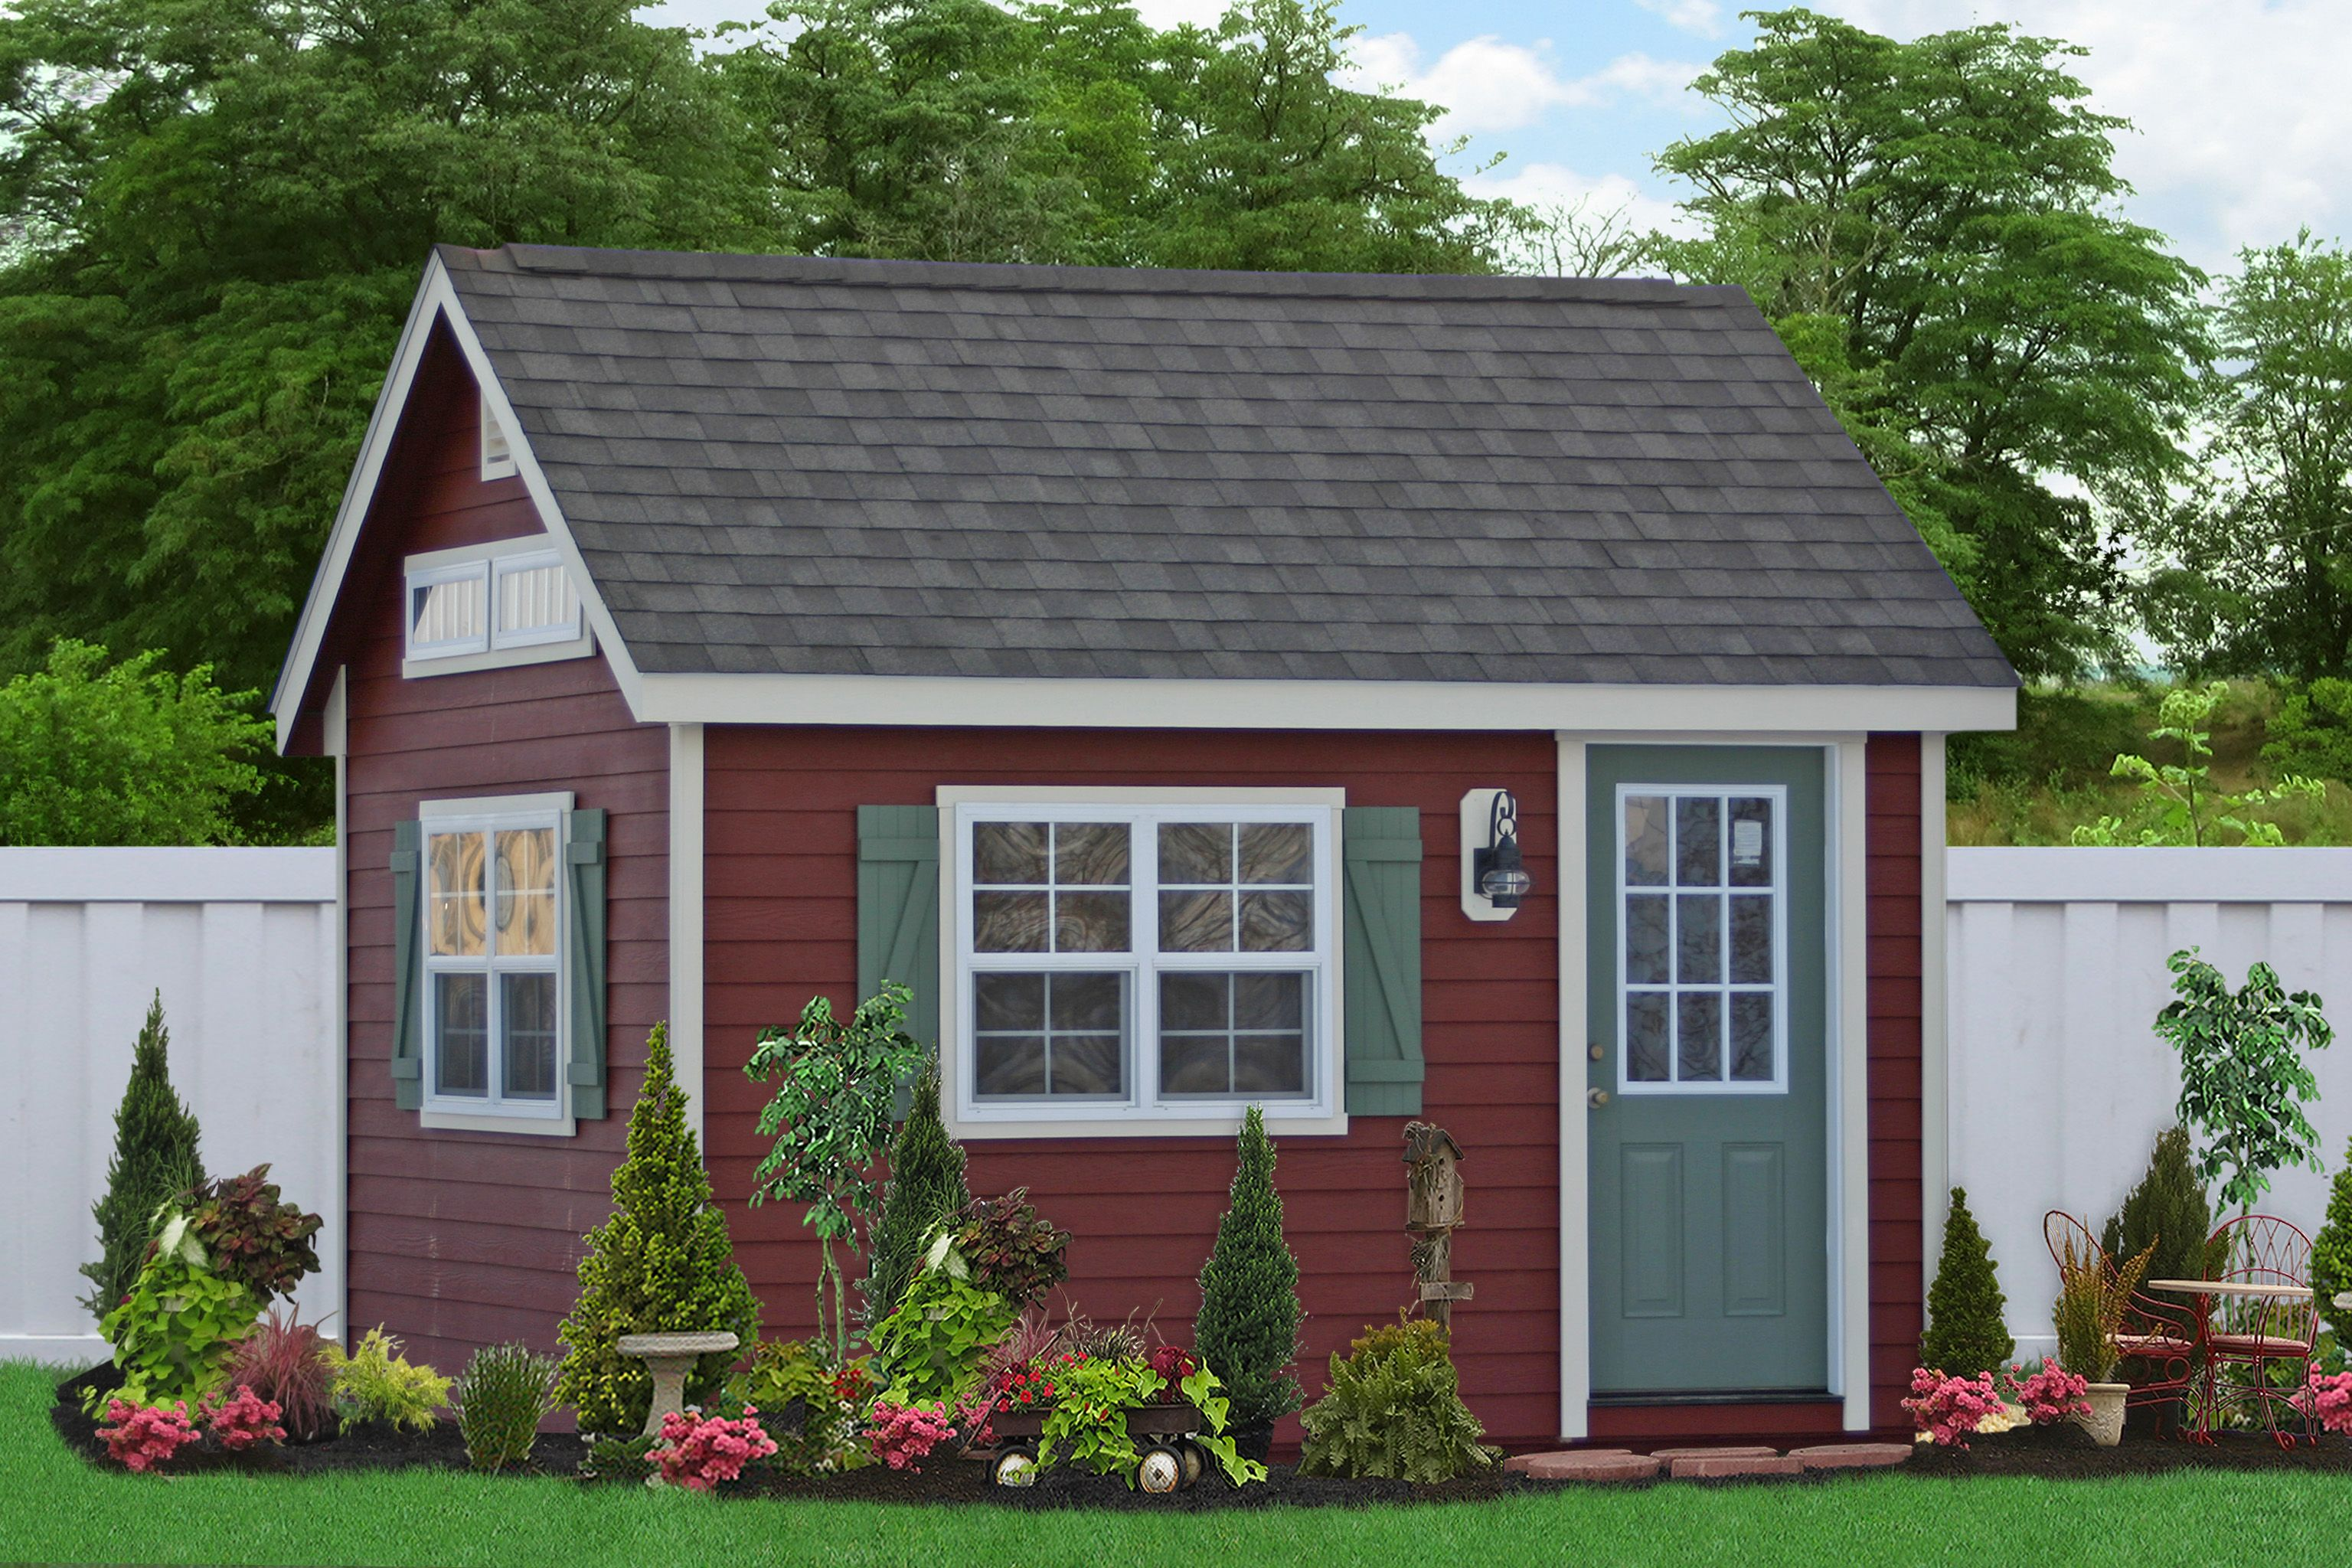 outdoor shed office. A 10x14 Backyard STUDIO Shed Or HOME OFFICE. This Building Comes From The Amish In Lancaster, PA And Is Available As Completed Unit Inside Out. Outdoor Office F